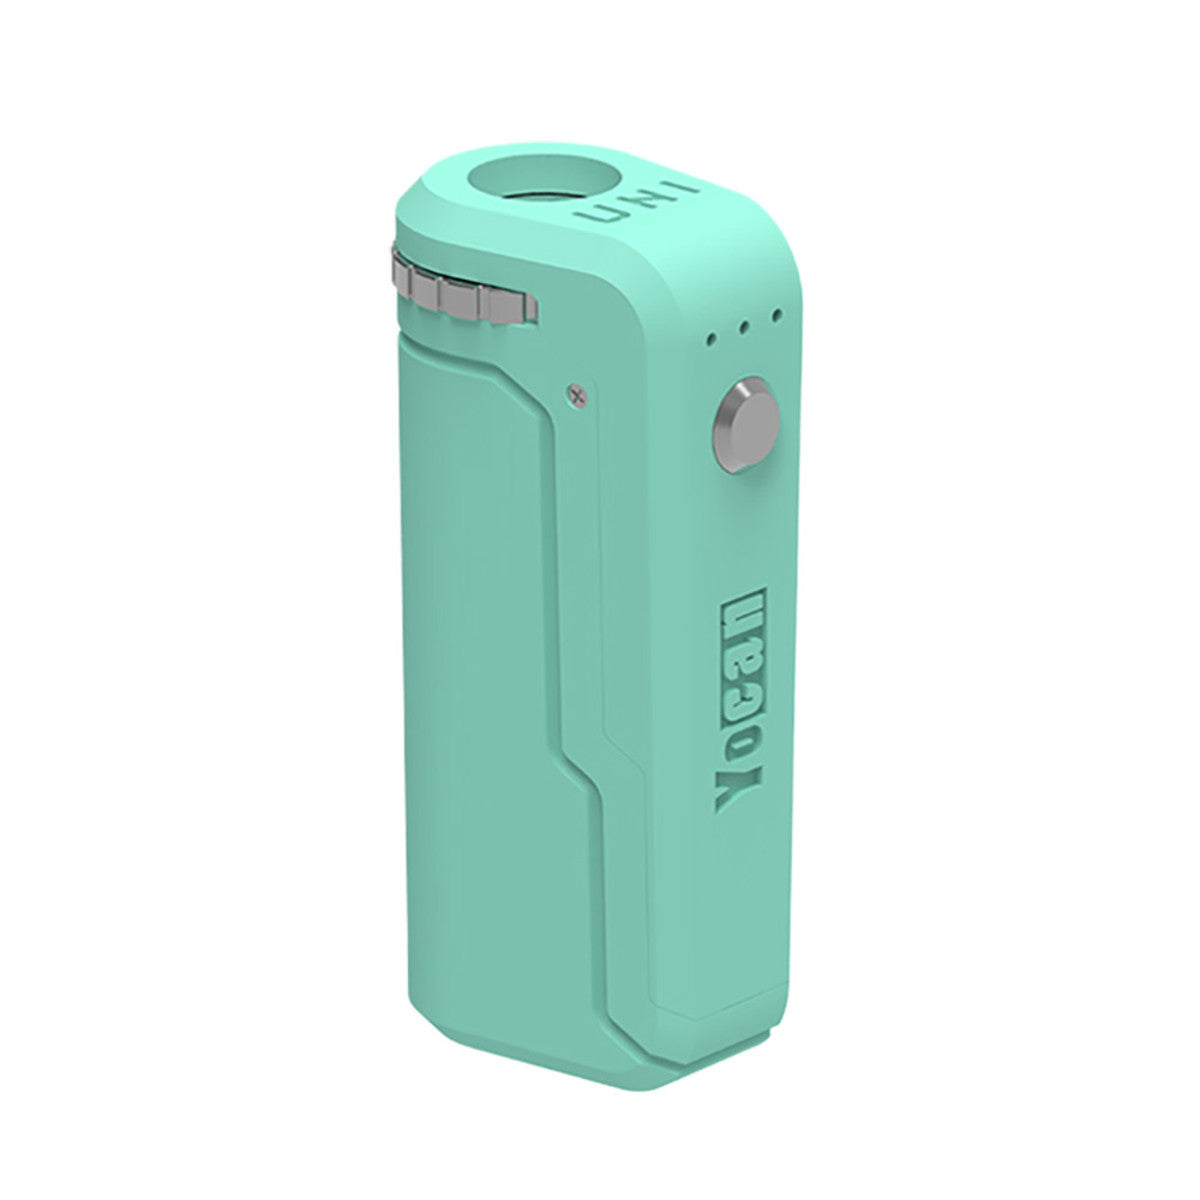 Yocan UNI Portable Box Mod- Mint Green